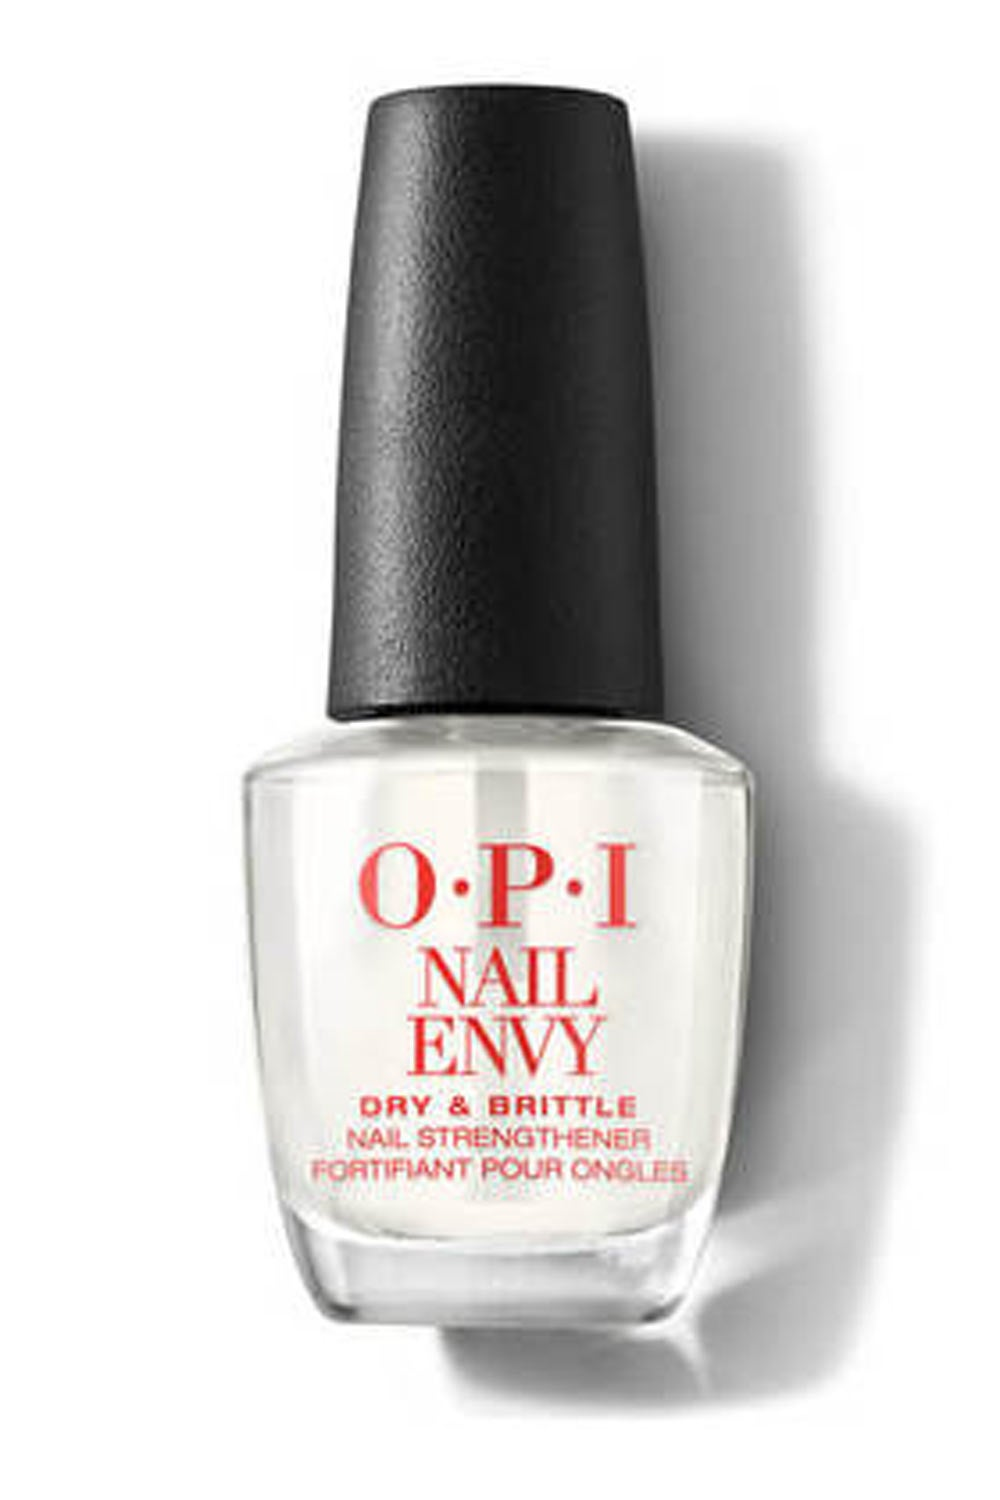 OPI Nail Envy Dry and Brittle Nail Treatment for Cancer Patients